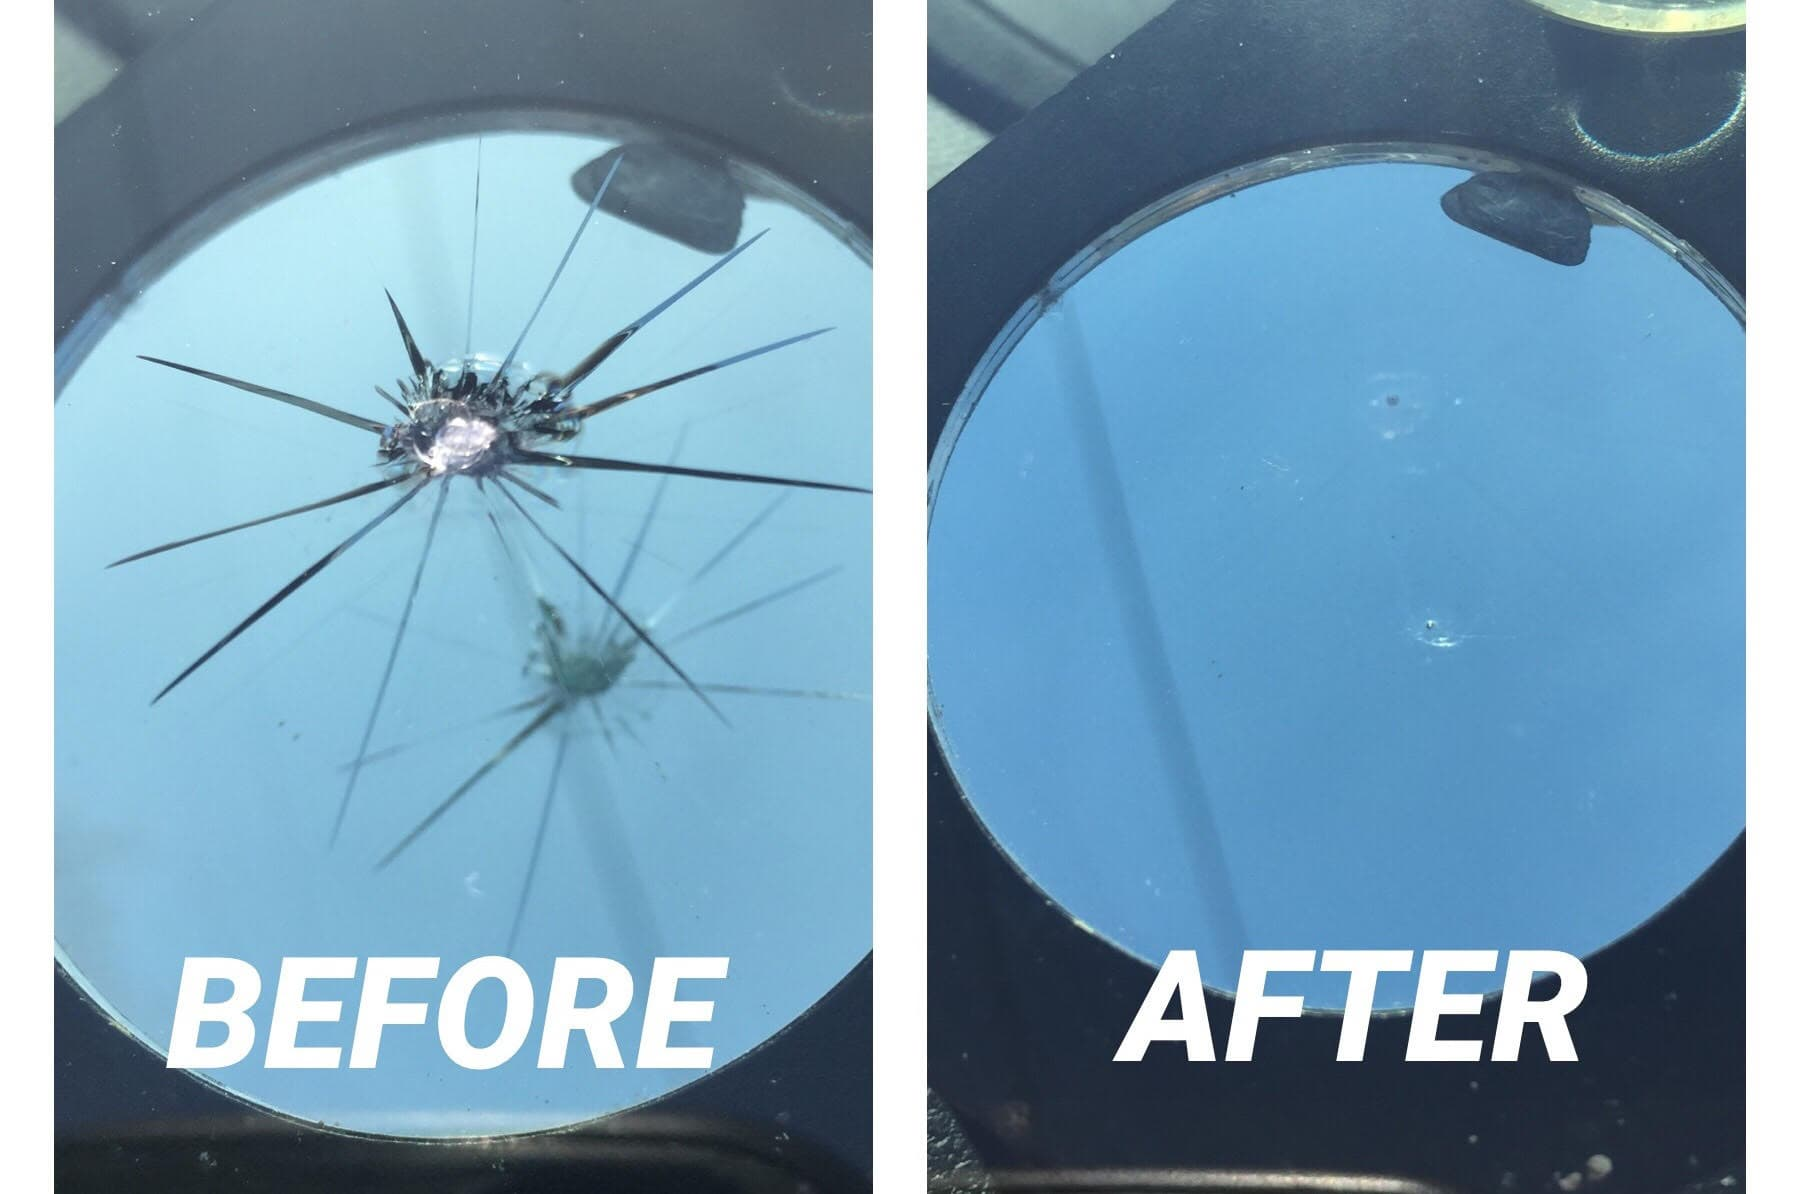 windshield rock chip repair before & after